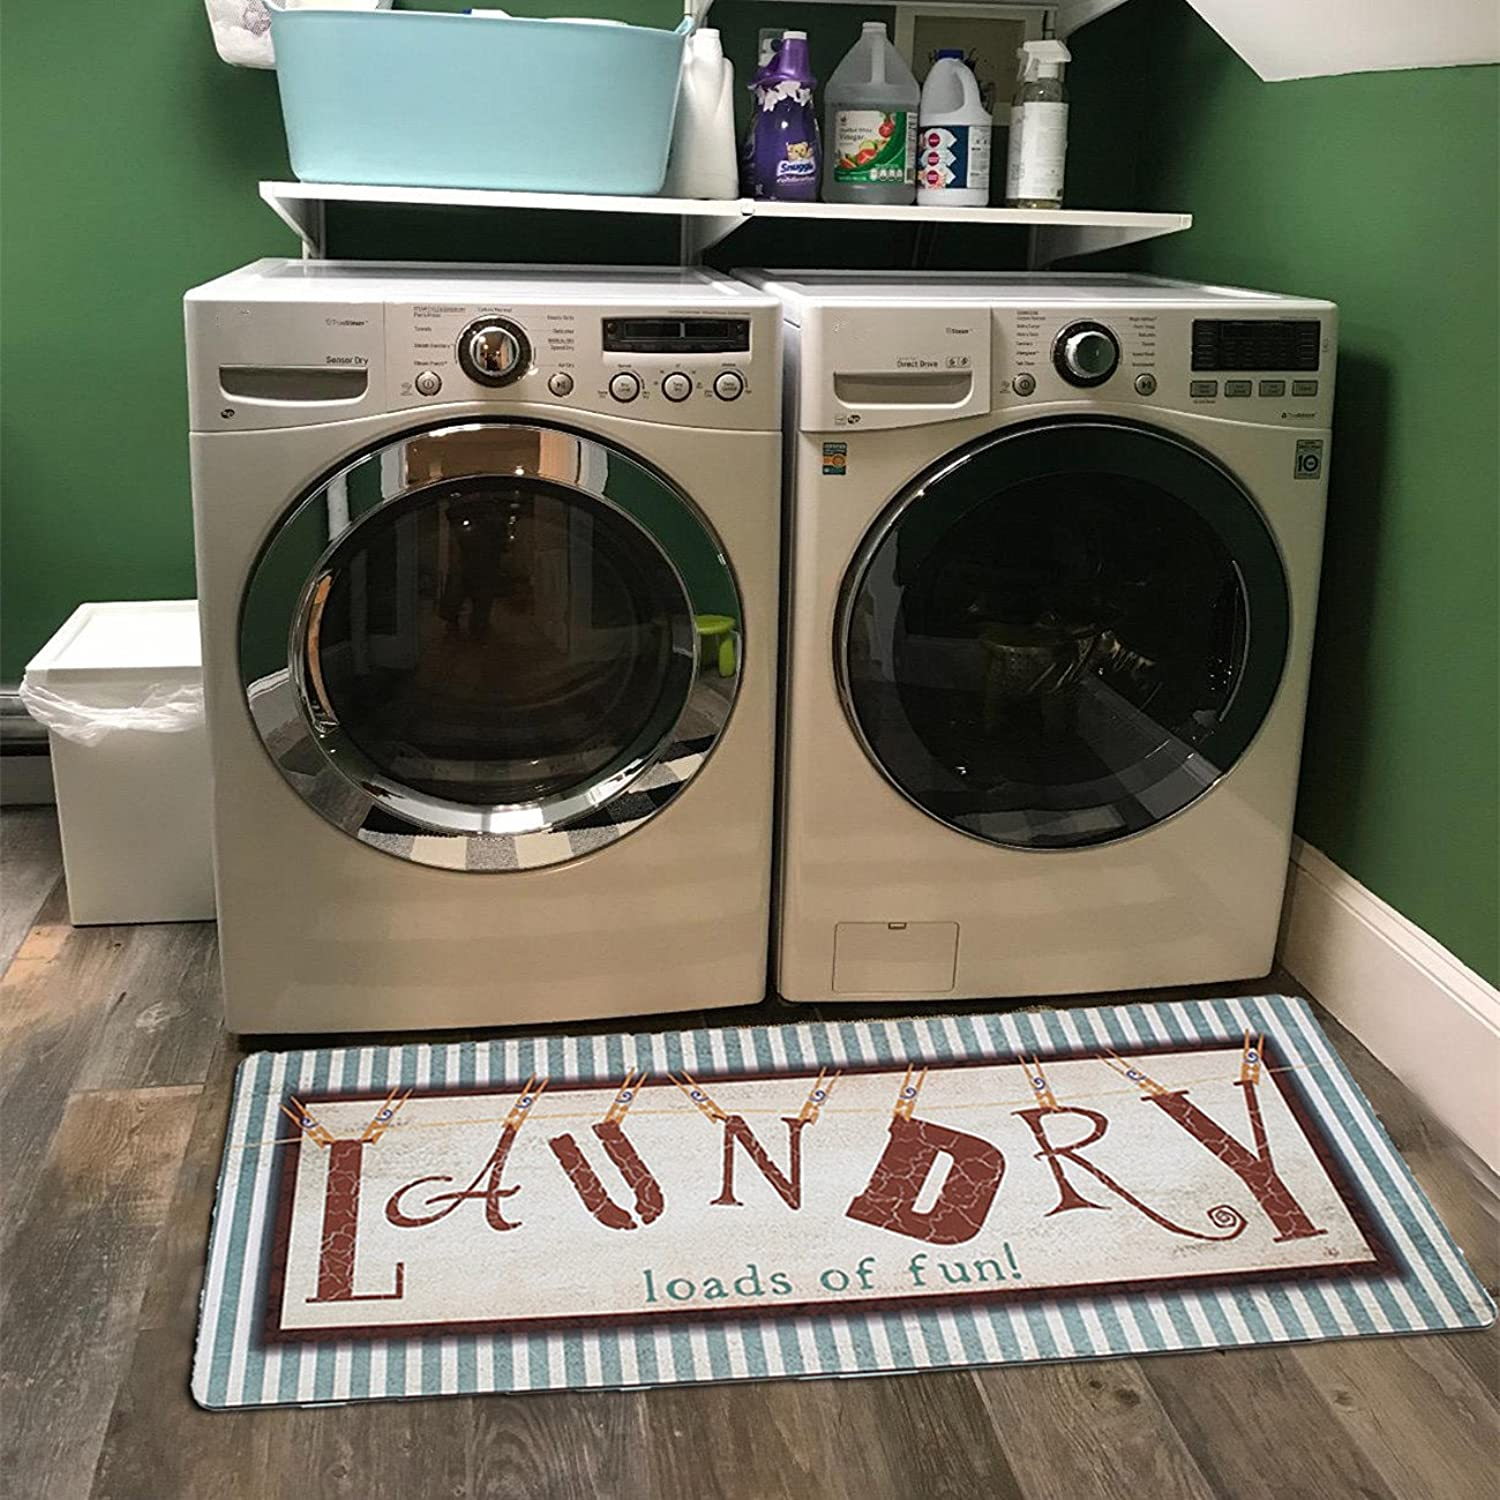 Ukeler Laundry Rug, Non Skid Laundry Room Wash House Mat Waterproof Floor Runners for Bath Room 2x4